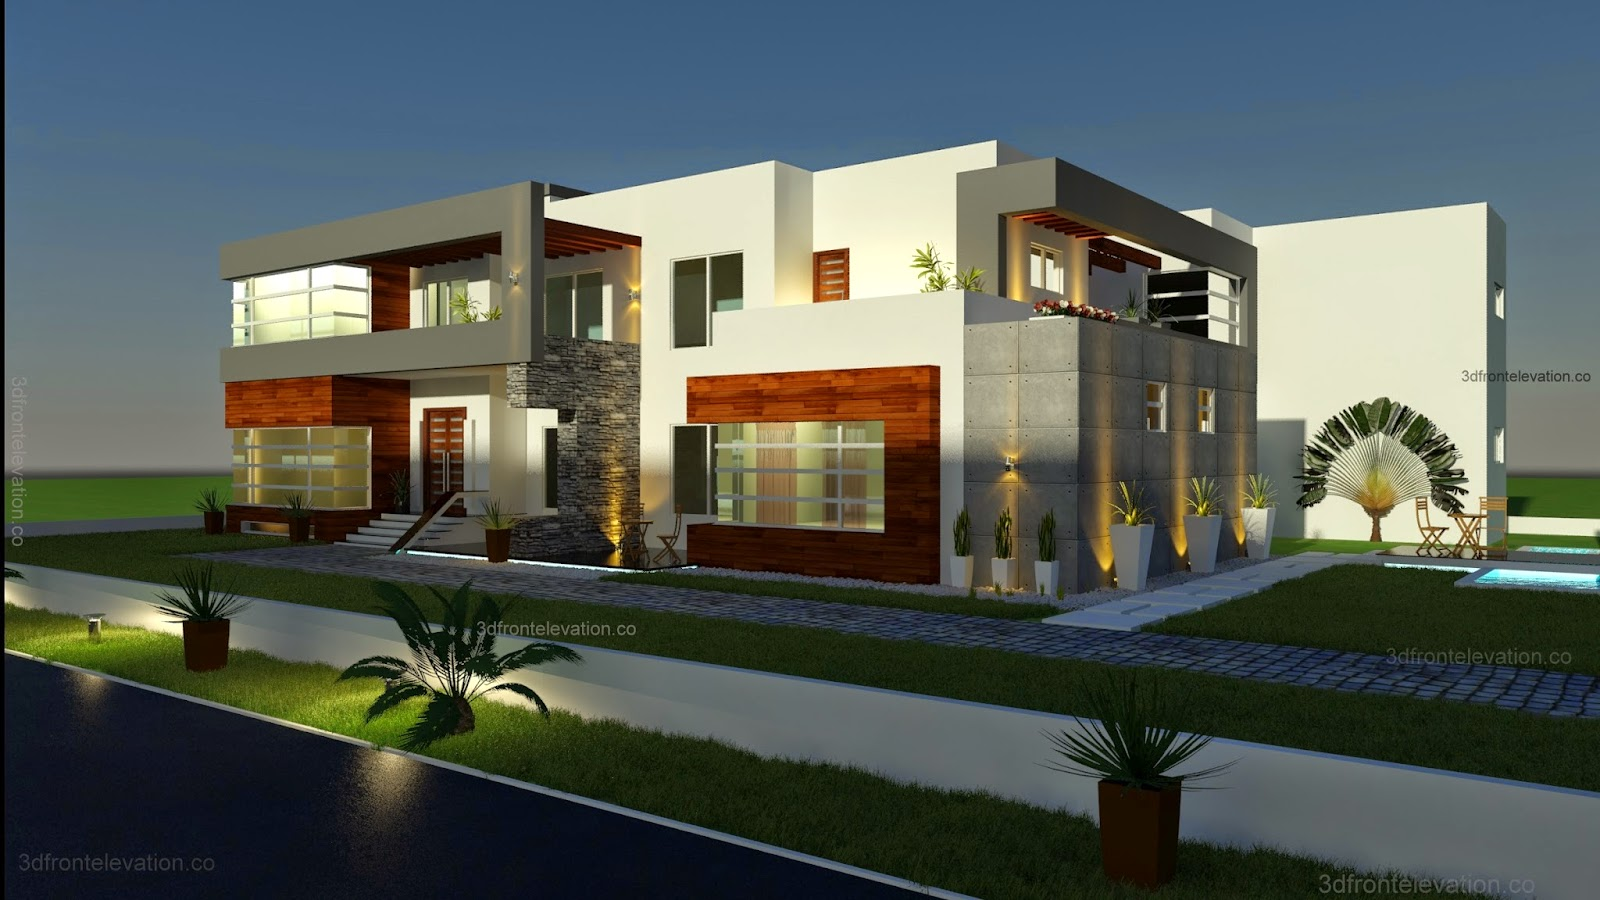 500 square meters house plan house design plans for 500 square meters house design